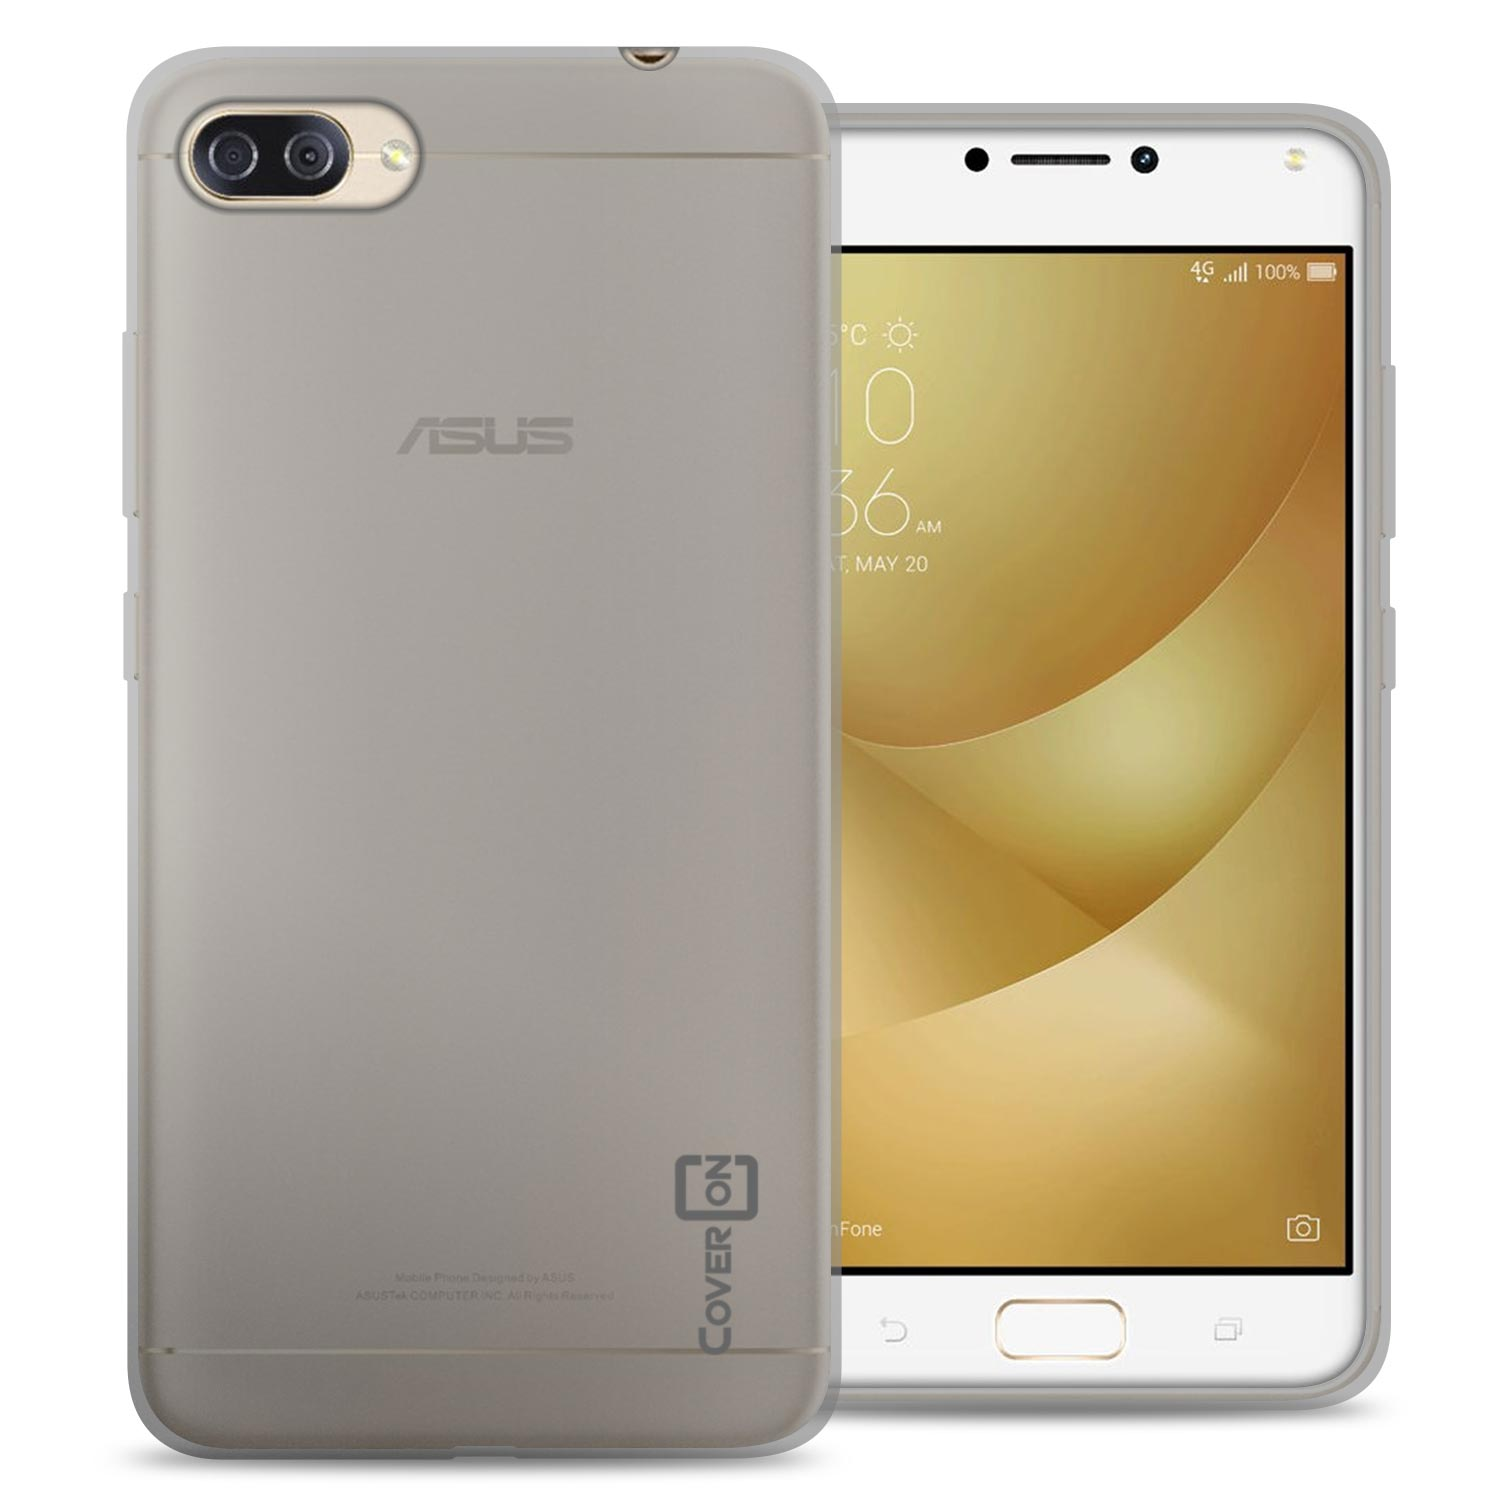 size 40 369ba 4bcc9 Details about Clear Case For Asus Zenfone 4 Max 5.5